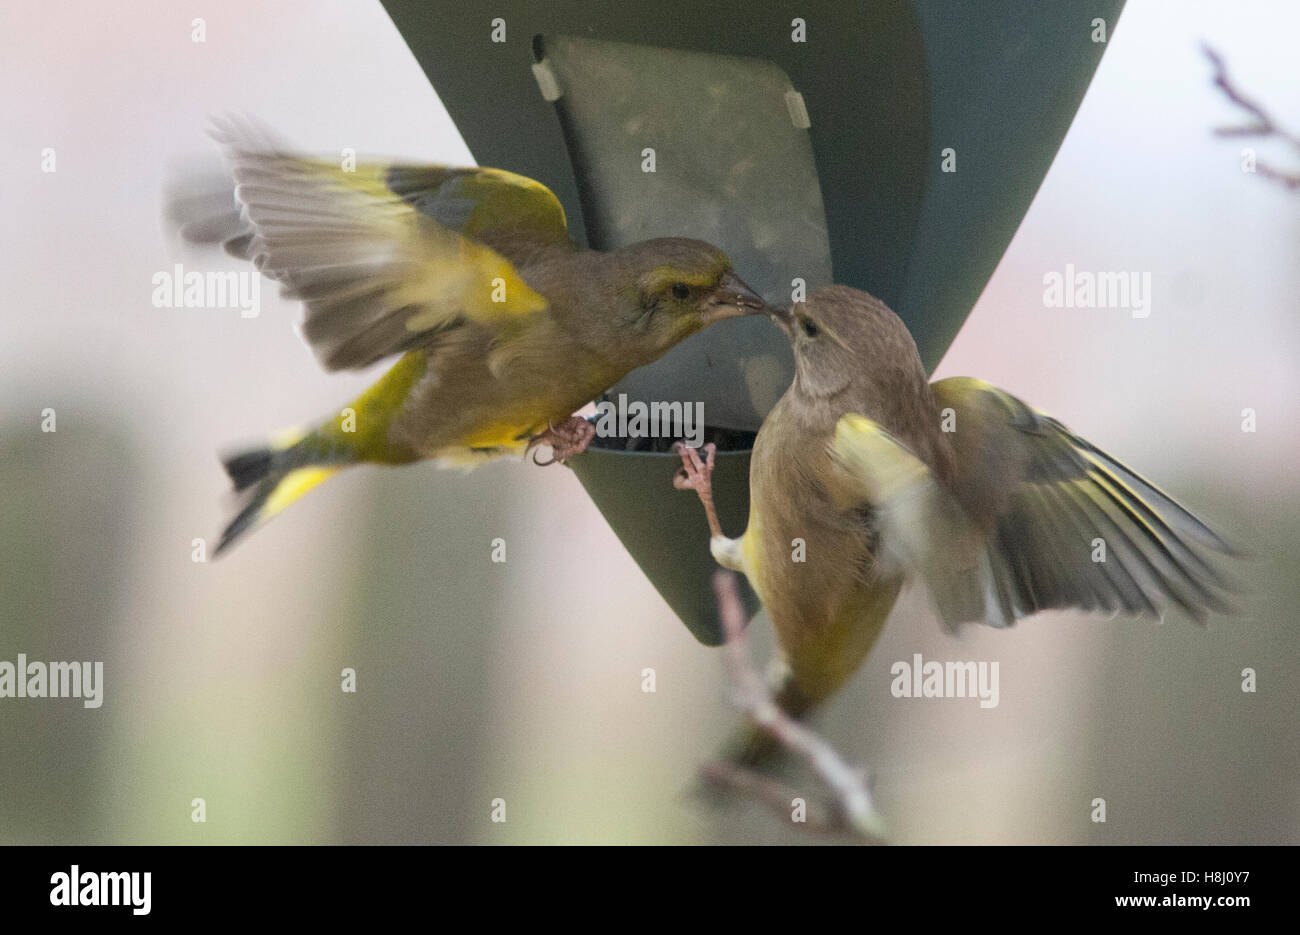 GREEN FINCHES at feed machine - Stock Image